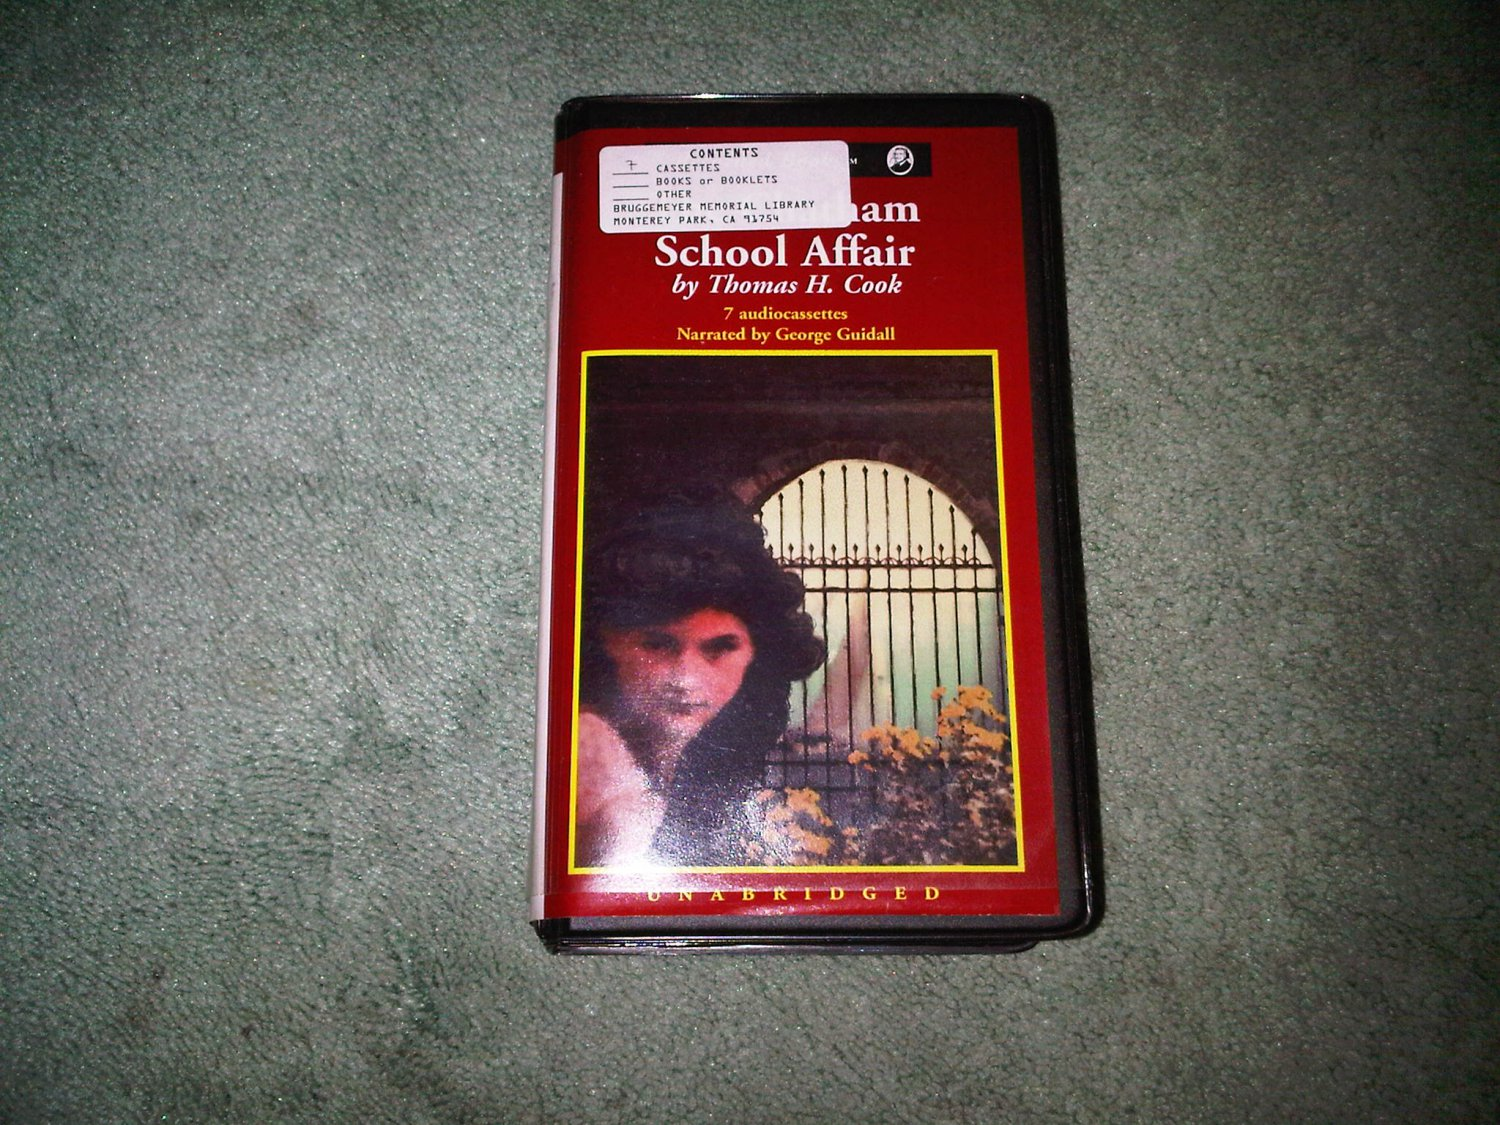 SCHOOL AFFAIR THOMAS COOK casette audio book books home education FICTION